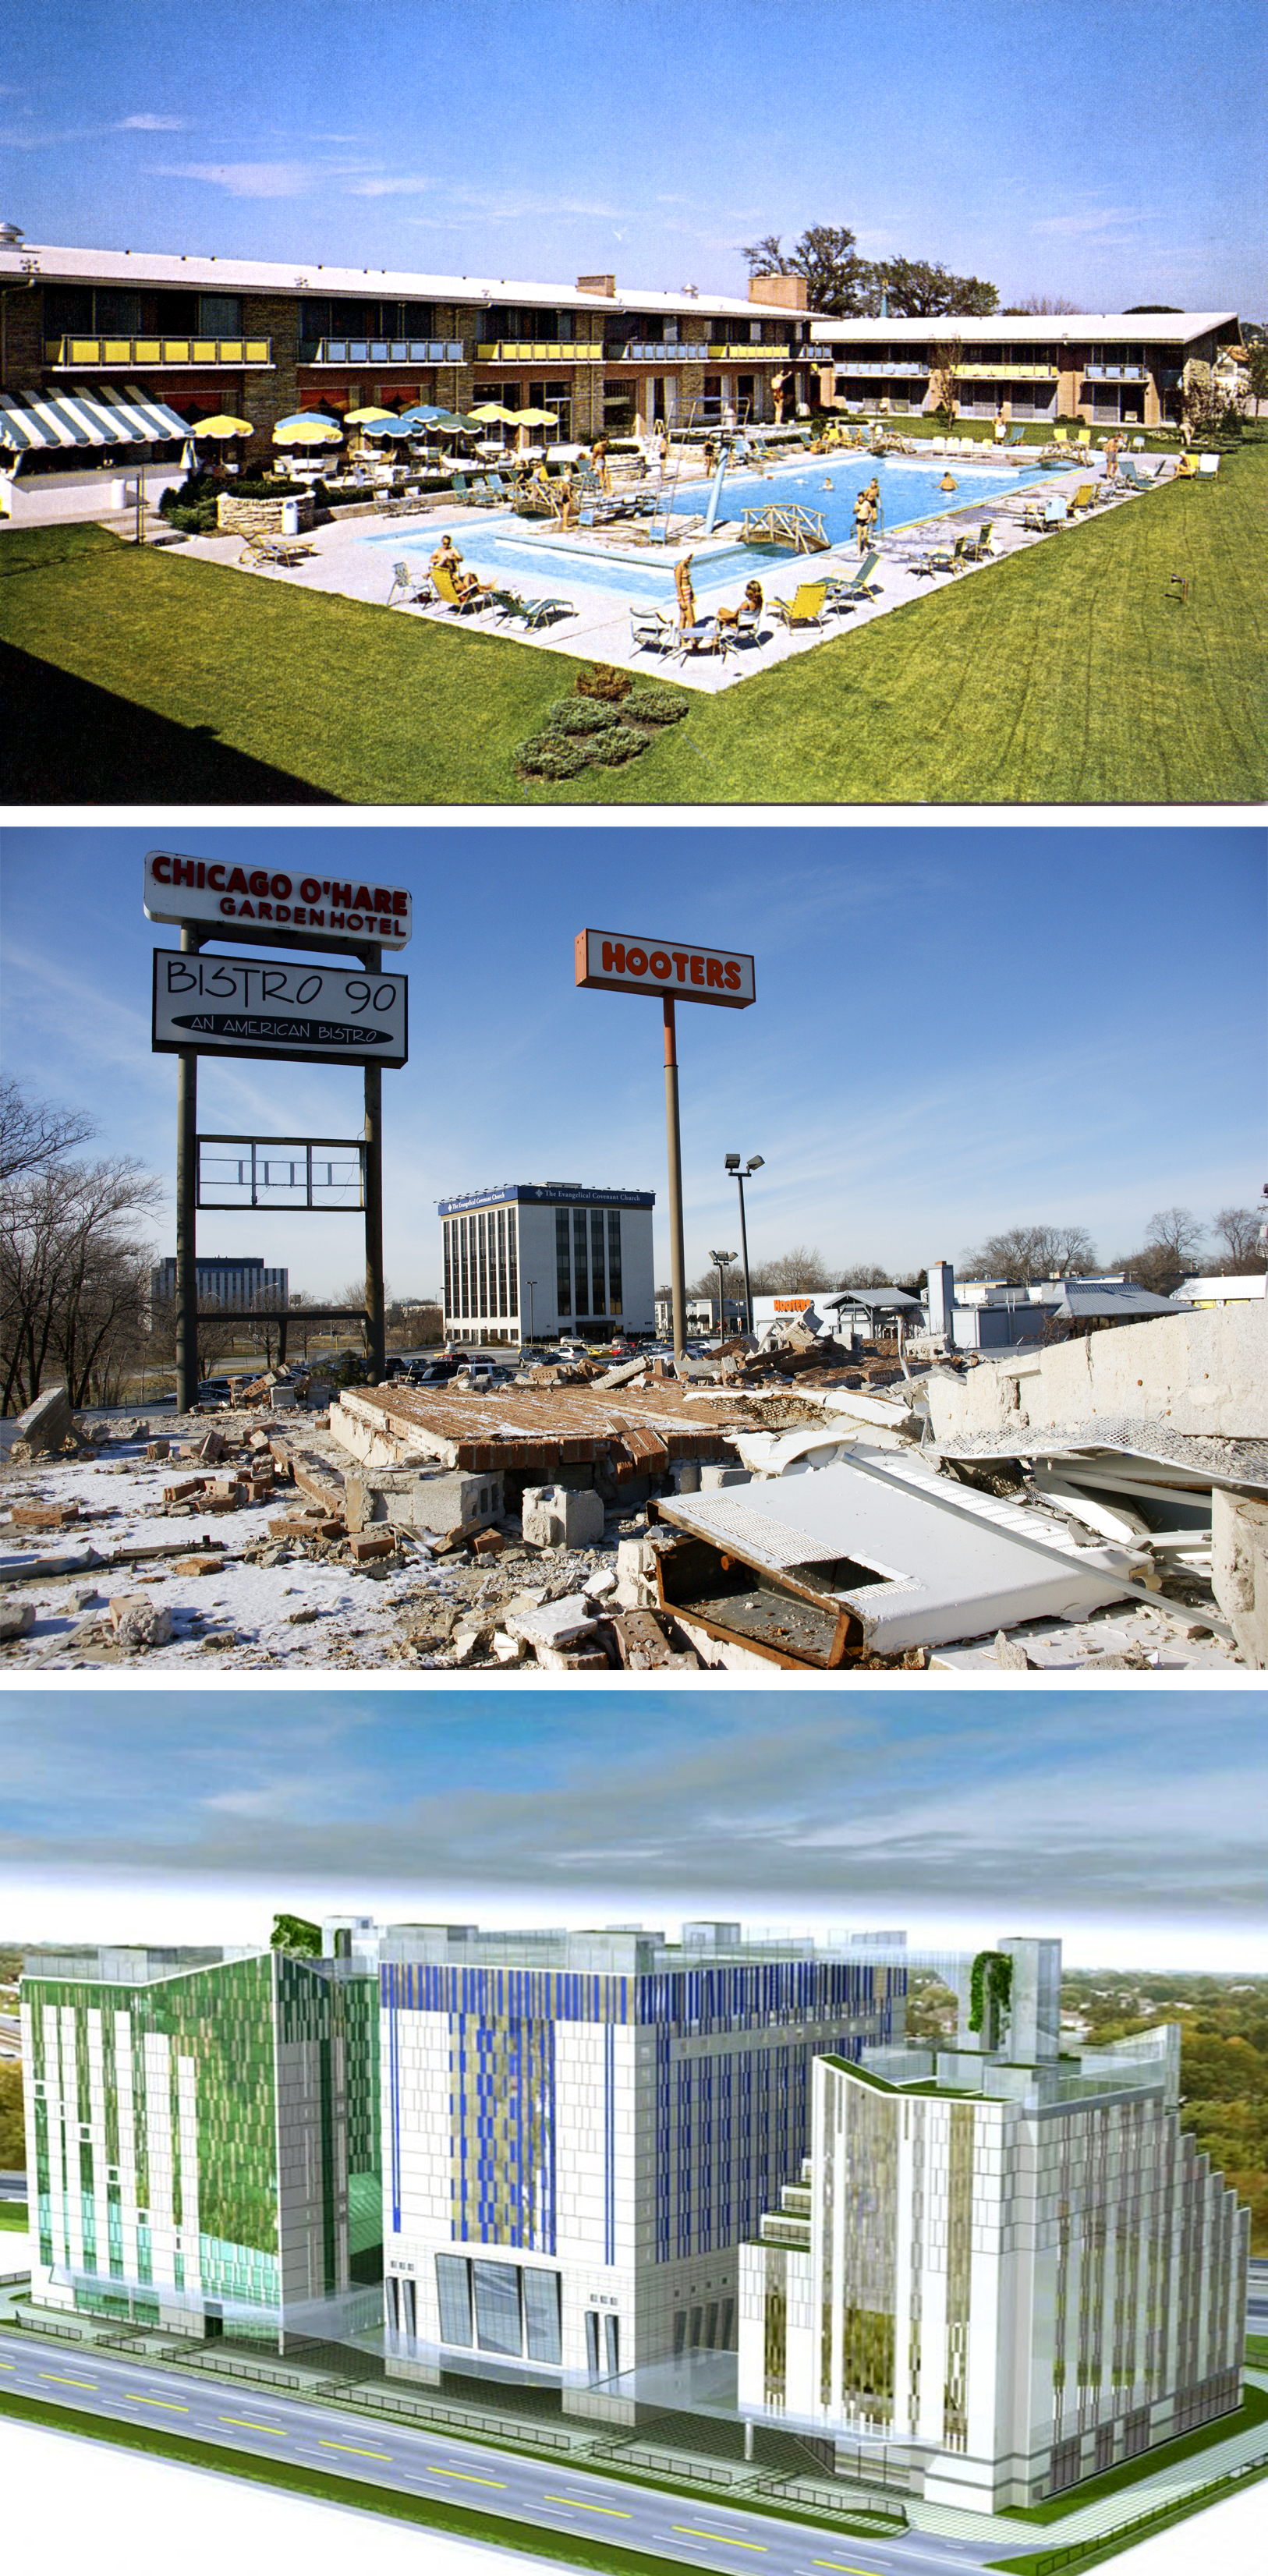 From HoJo to hobo?  The Howard Johnson Motor Lodge near O'Hare Airport (top, in the 1960s) became the Sethis' motel (center, after demolition began in late 2012). Bottom, renderings of the hotel/convention center planned for the site. Today the space is a weed-filled empty lot.